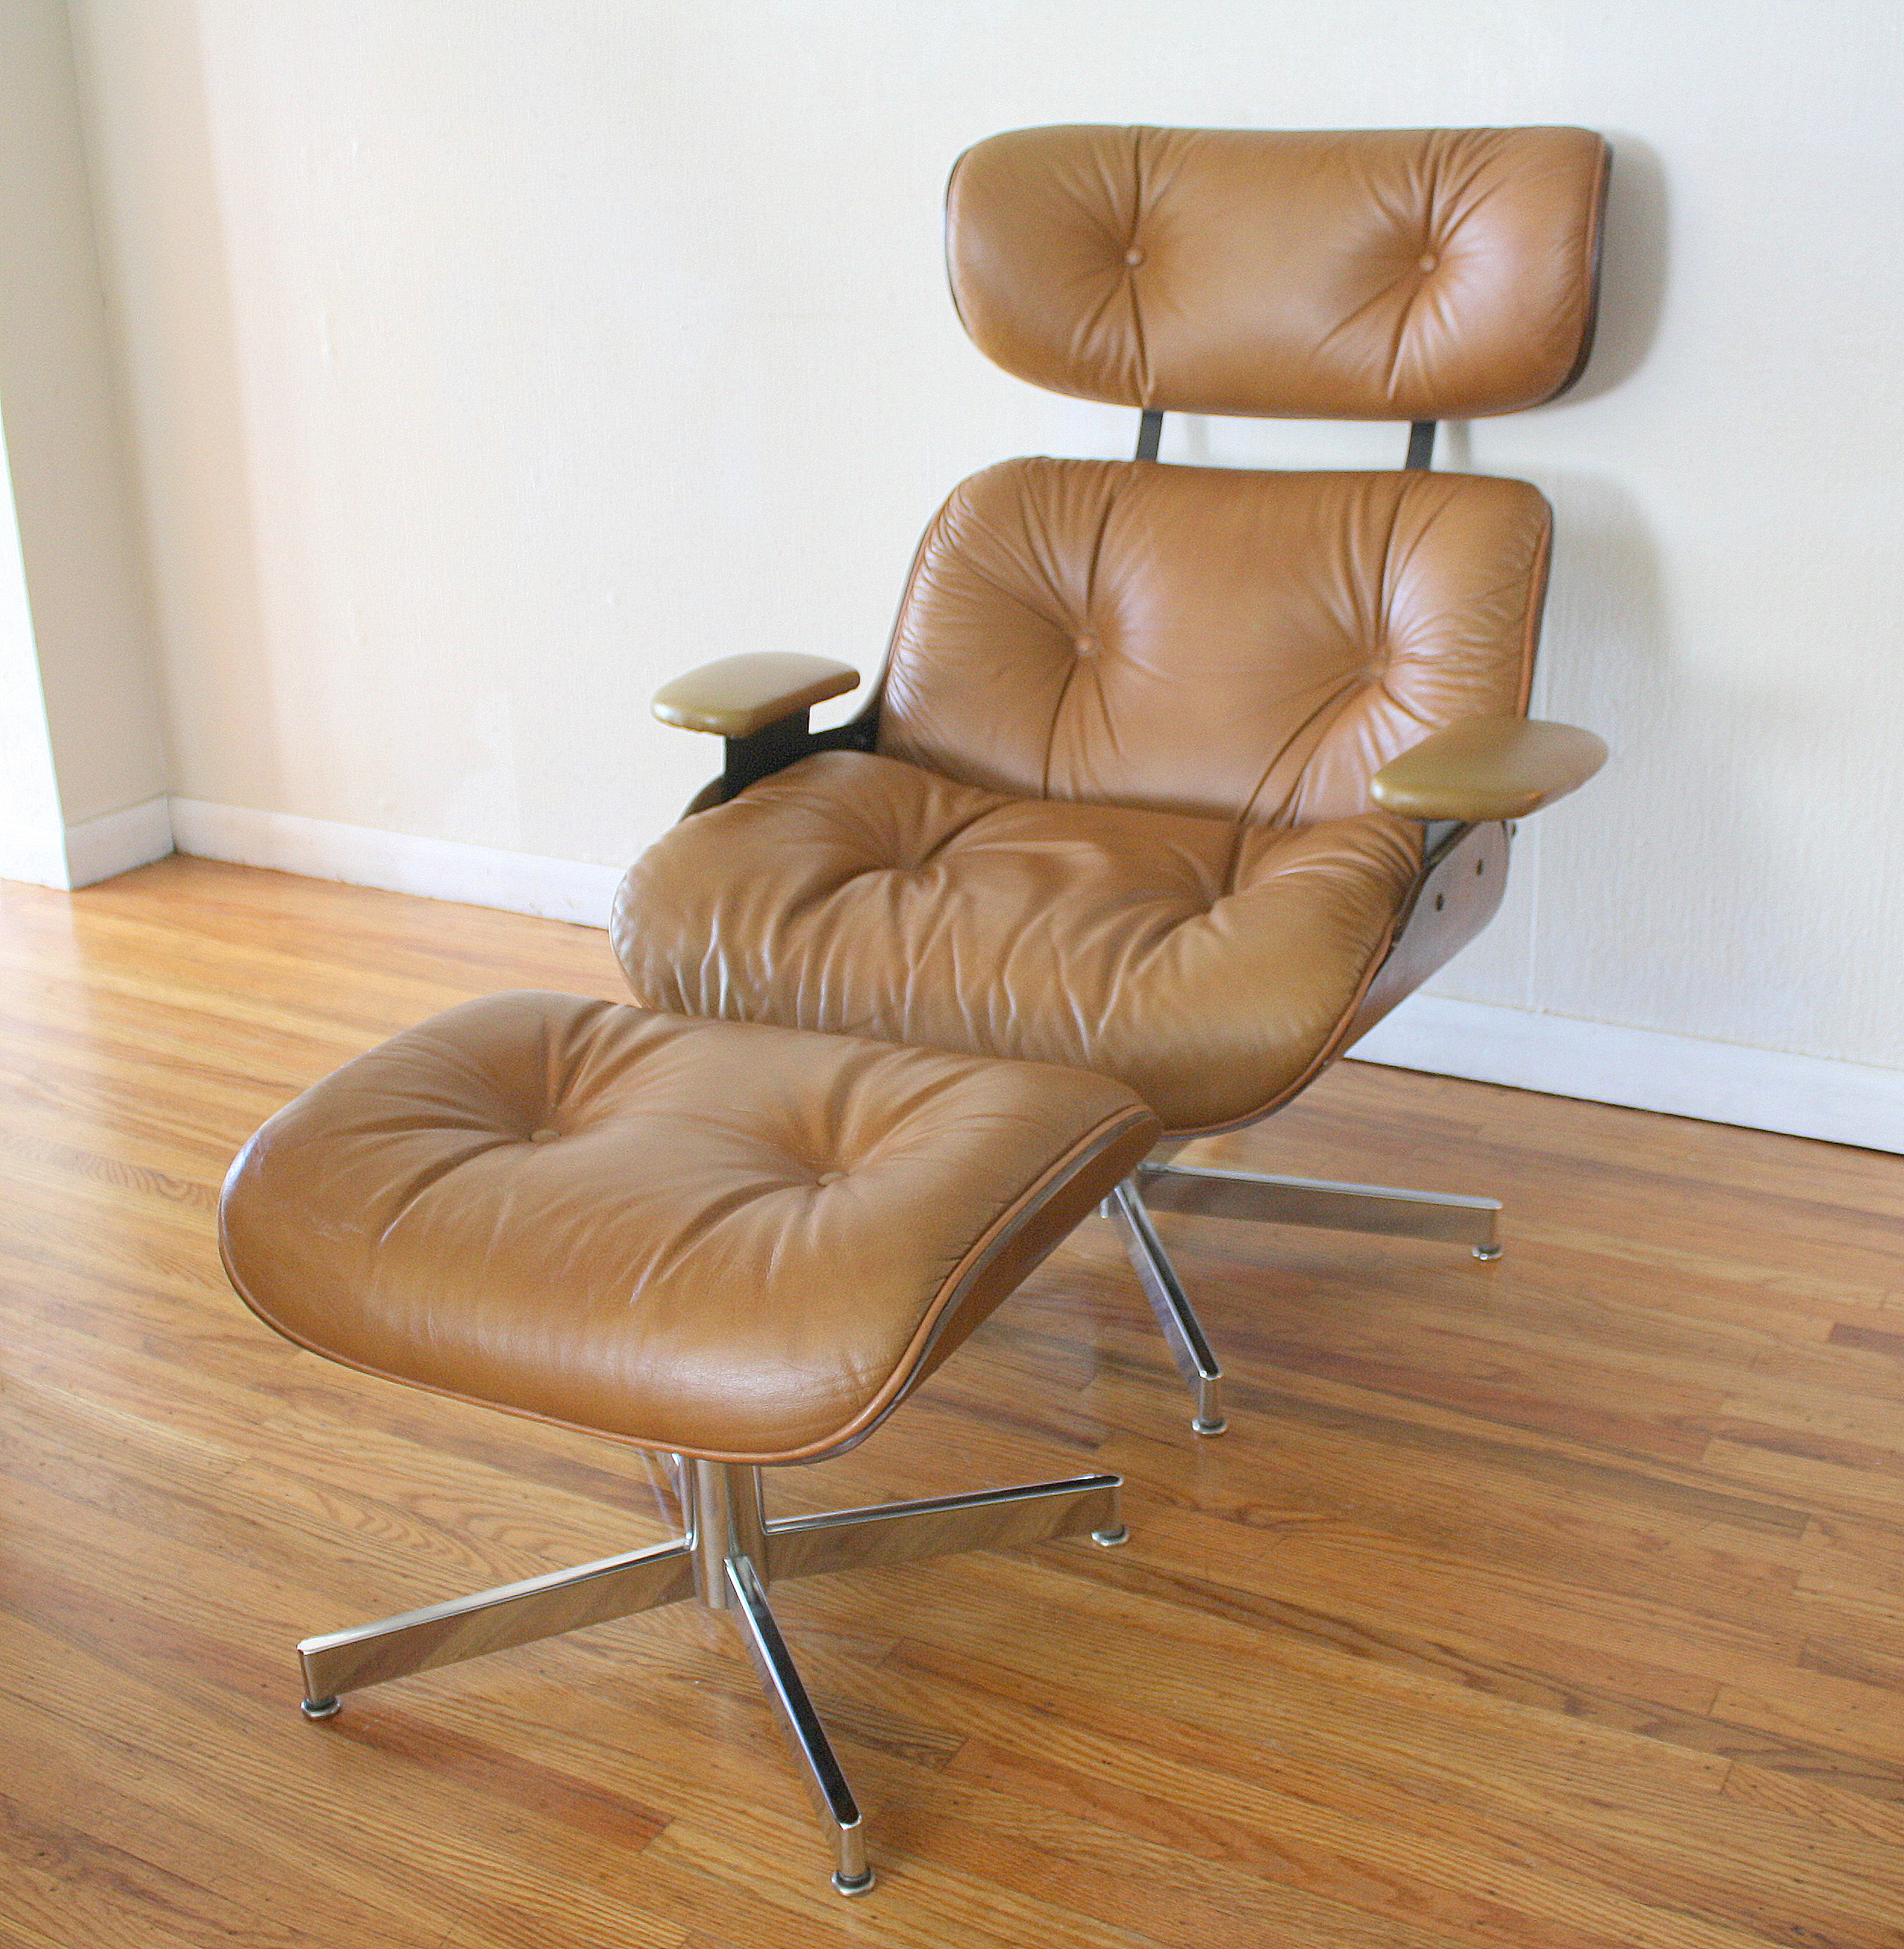 Mcm Eames Plywood Lounge Chair With Ottoman 1 ...